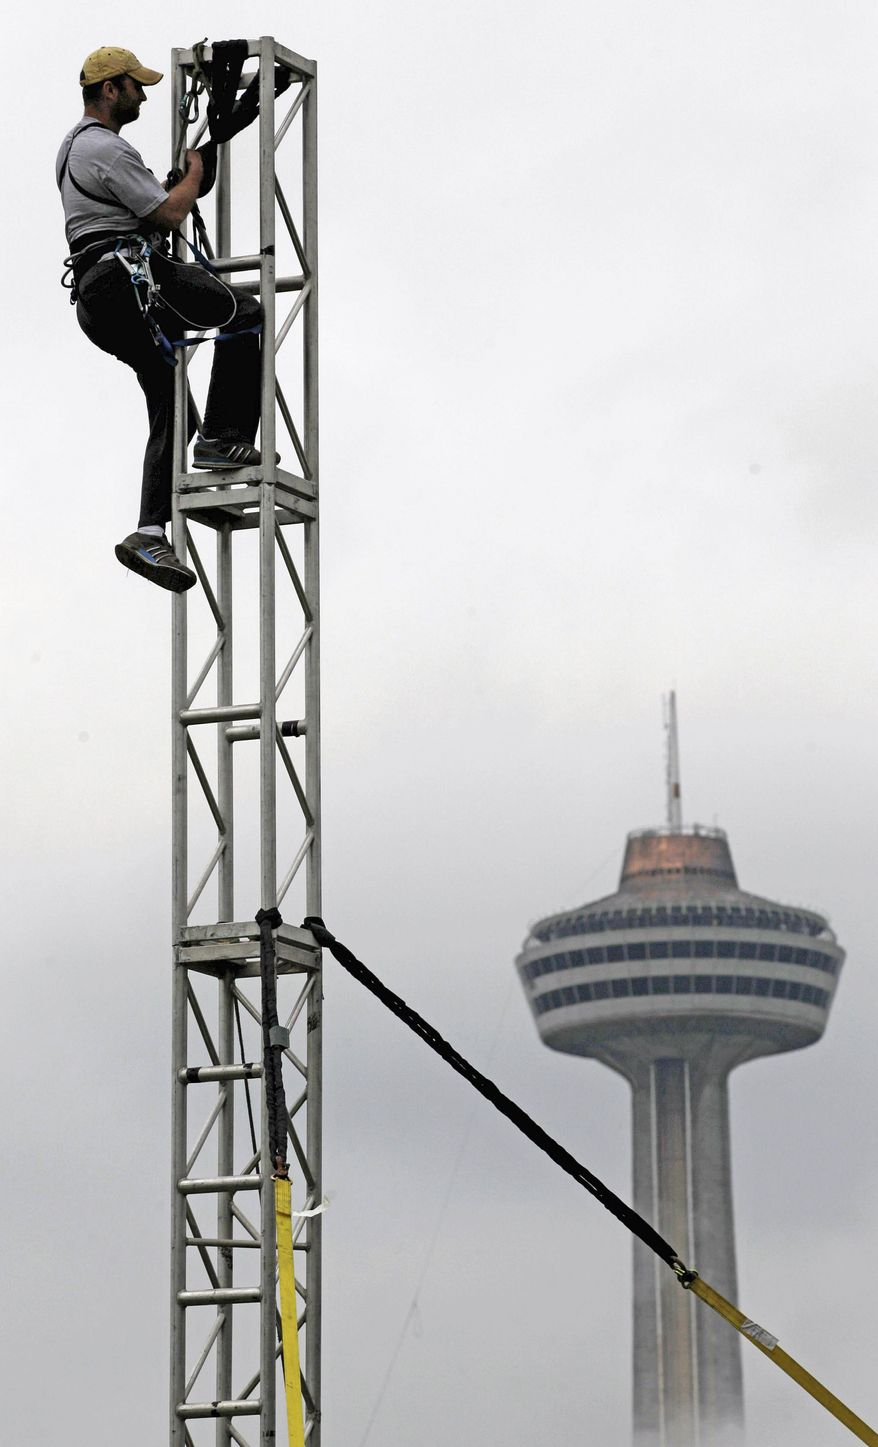 Scott O'Shea rigs a tower in preparation for Nik Wallenda's tightrope walk in Niagara Falls, N.Y., this week. Mr. Wallenda estimates his U.S.-to-Canada walk by way of a cable strung over the brink will cost $1.2 million to $1.3 million. (Associated Press)